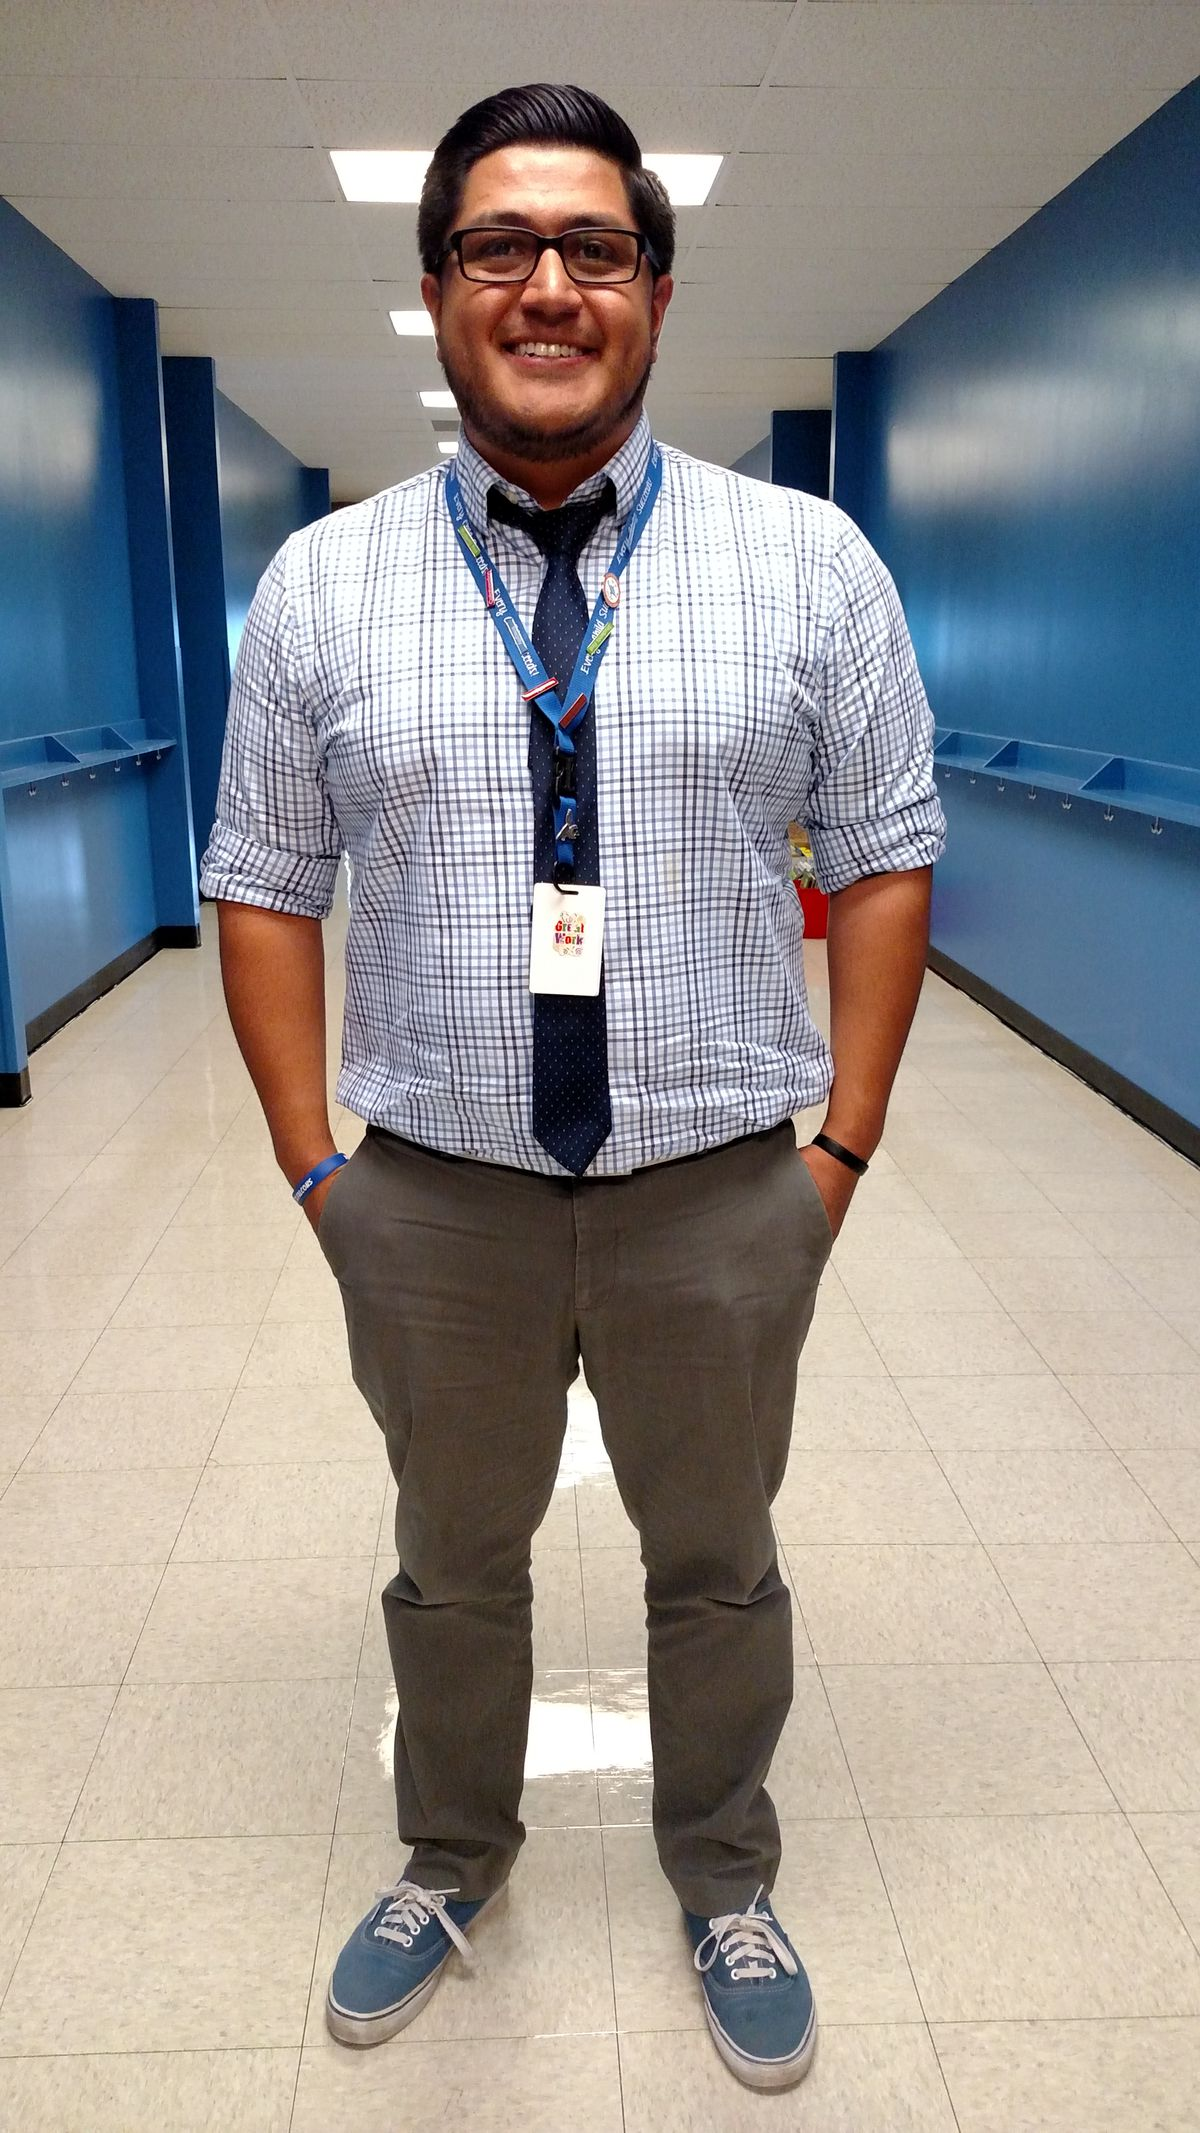 New Trevista principal Jesus Rodriguez lives five minutes from the school and often runs into families at Safeway or a local pizza place (photo by Eric Gorski).